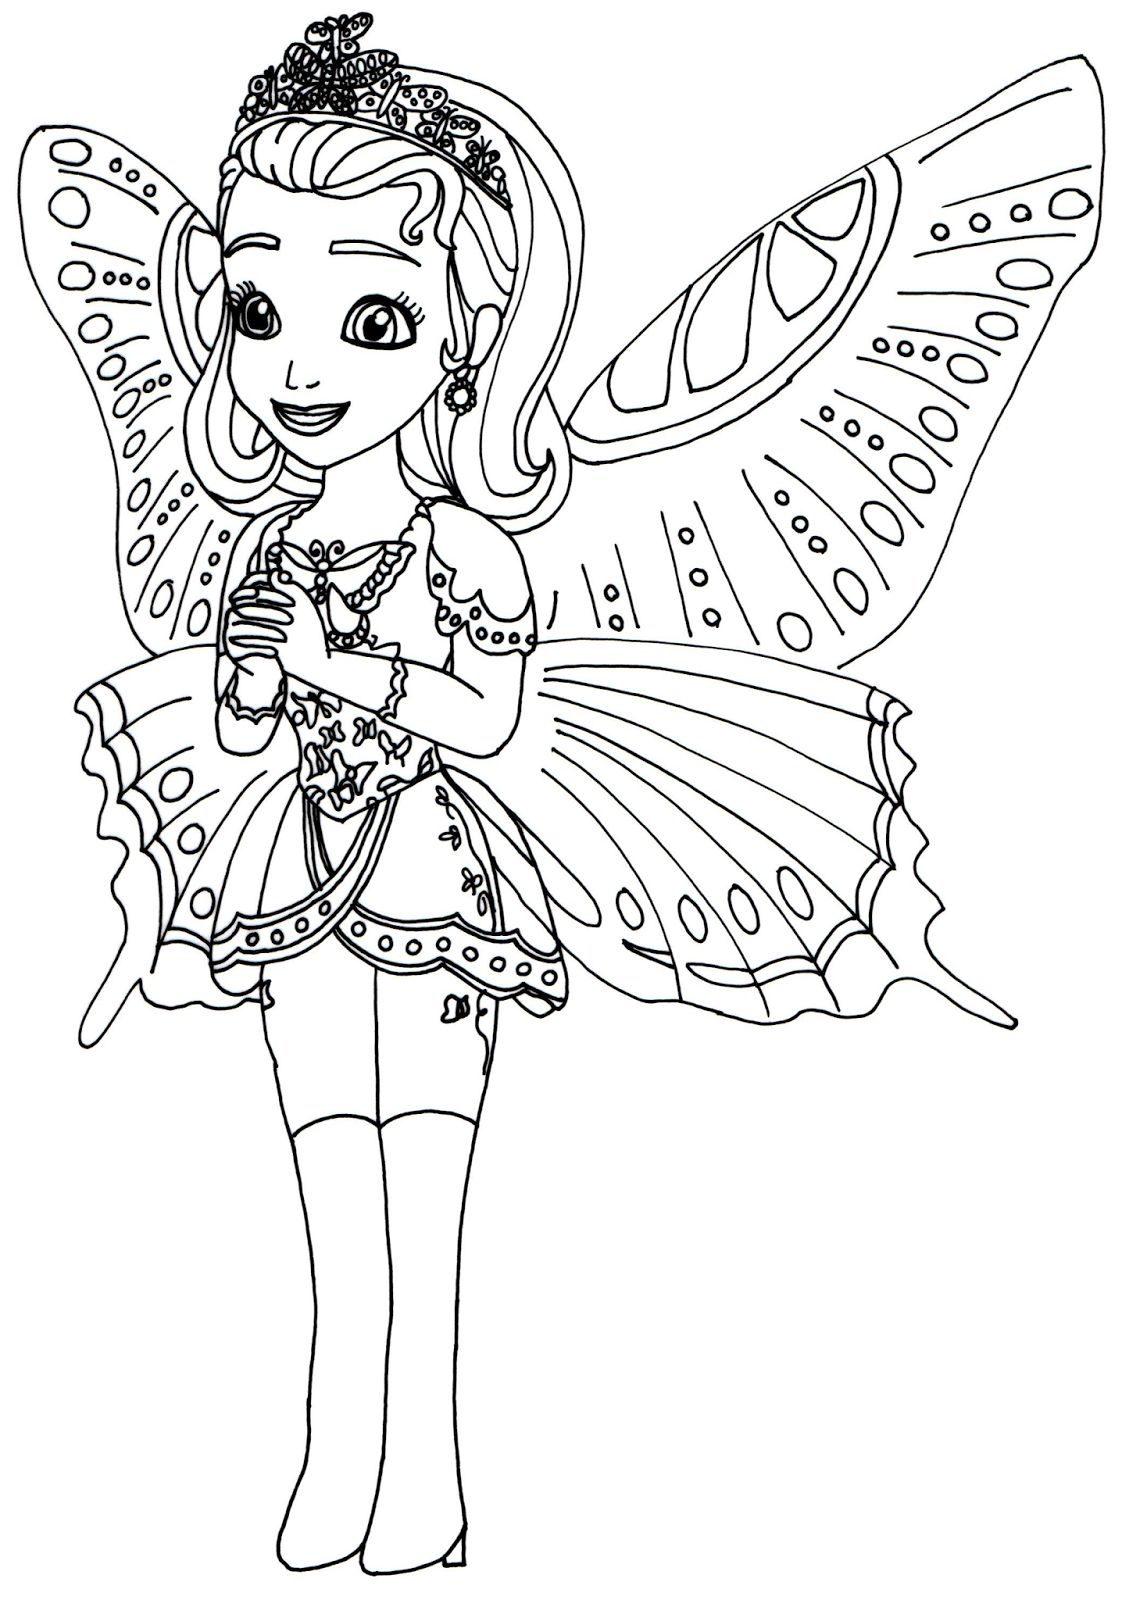 Colouring in pages for girls butterflies - Sofia The First Coloring Pages Princess Butterfly Sofia The First Coloring Page